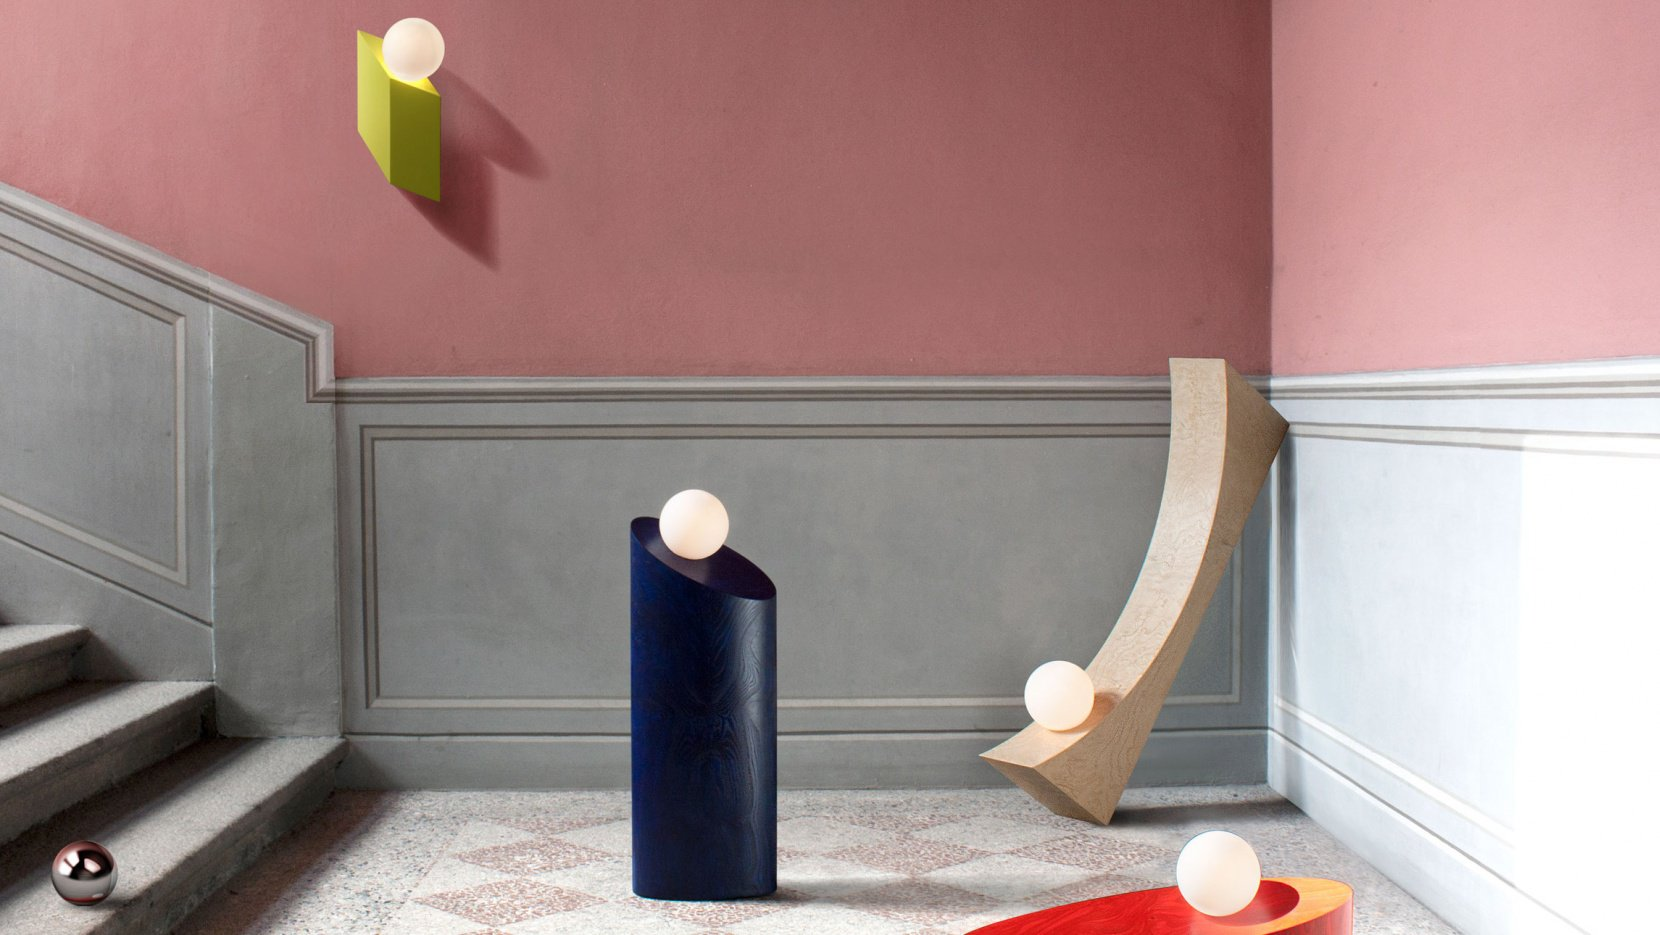 Stunning Lighting Objects by London-based Child Studio 1 sculpture lighting Stunning Sculpture Lighting Objects by London-based Child Studio Stunning Sculpture Lighting Objects by London based Child Studio